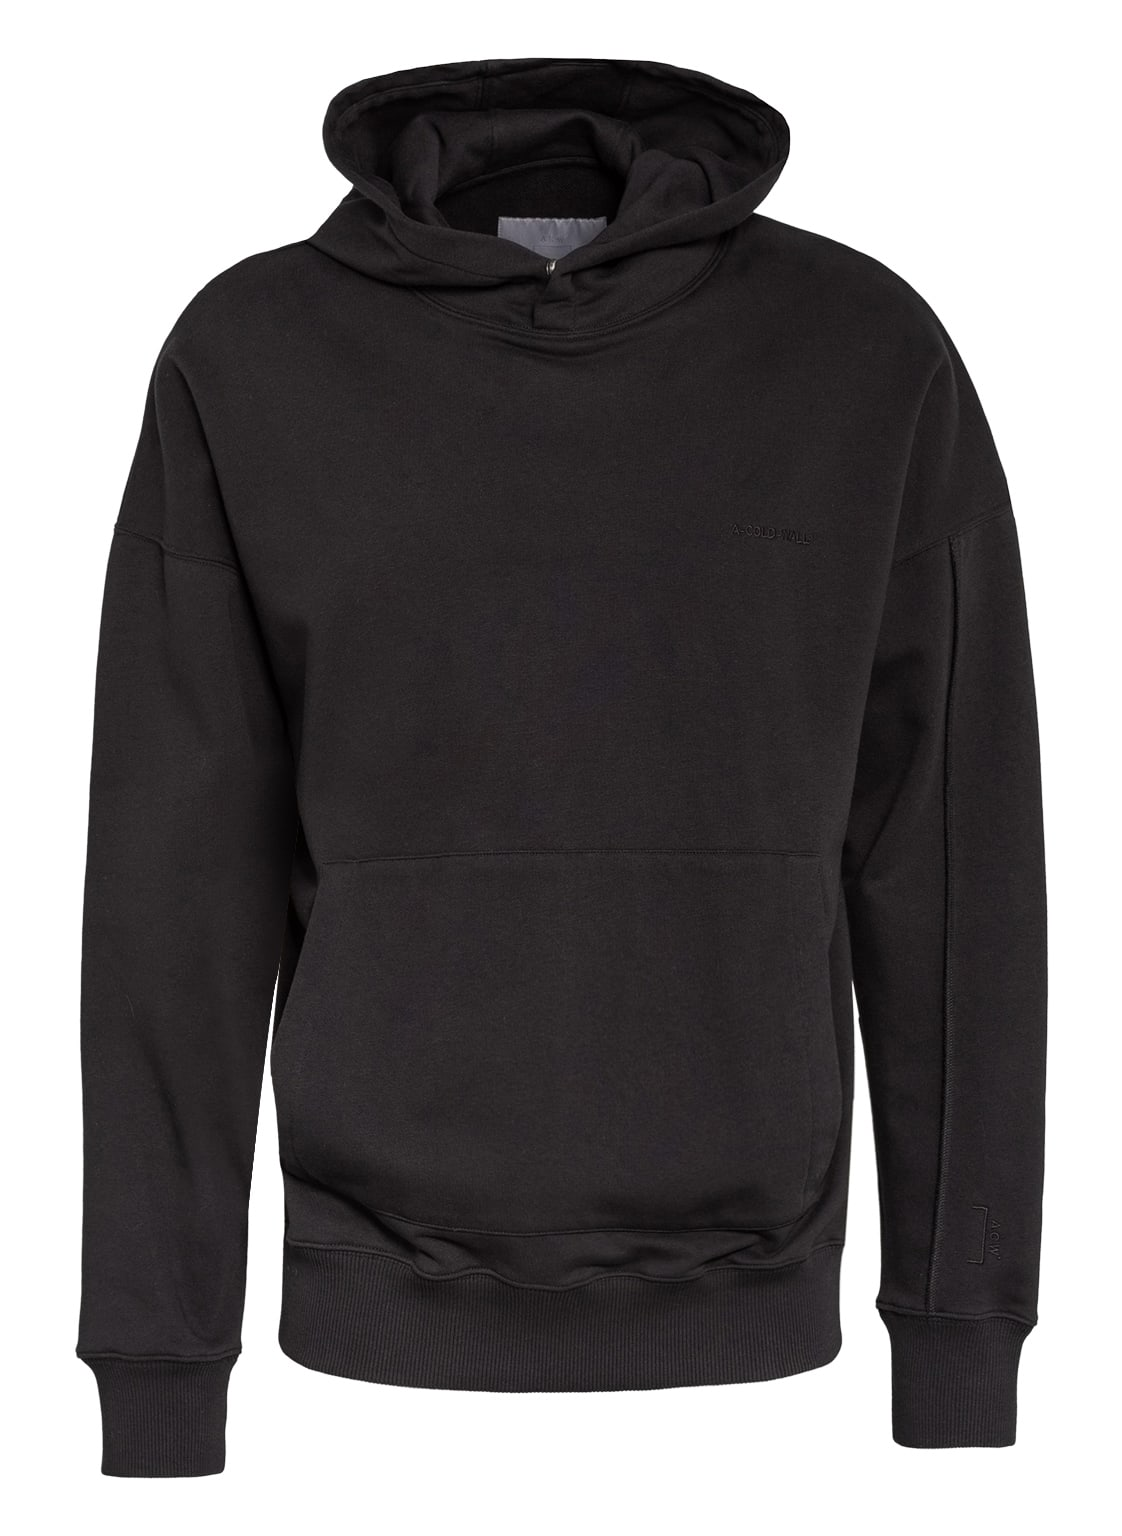 Image of A-Cold-Wall* Oversized-Hoodie schwarz